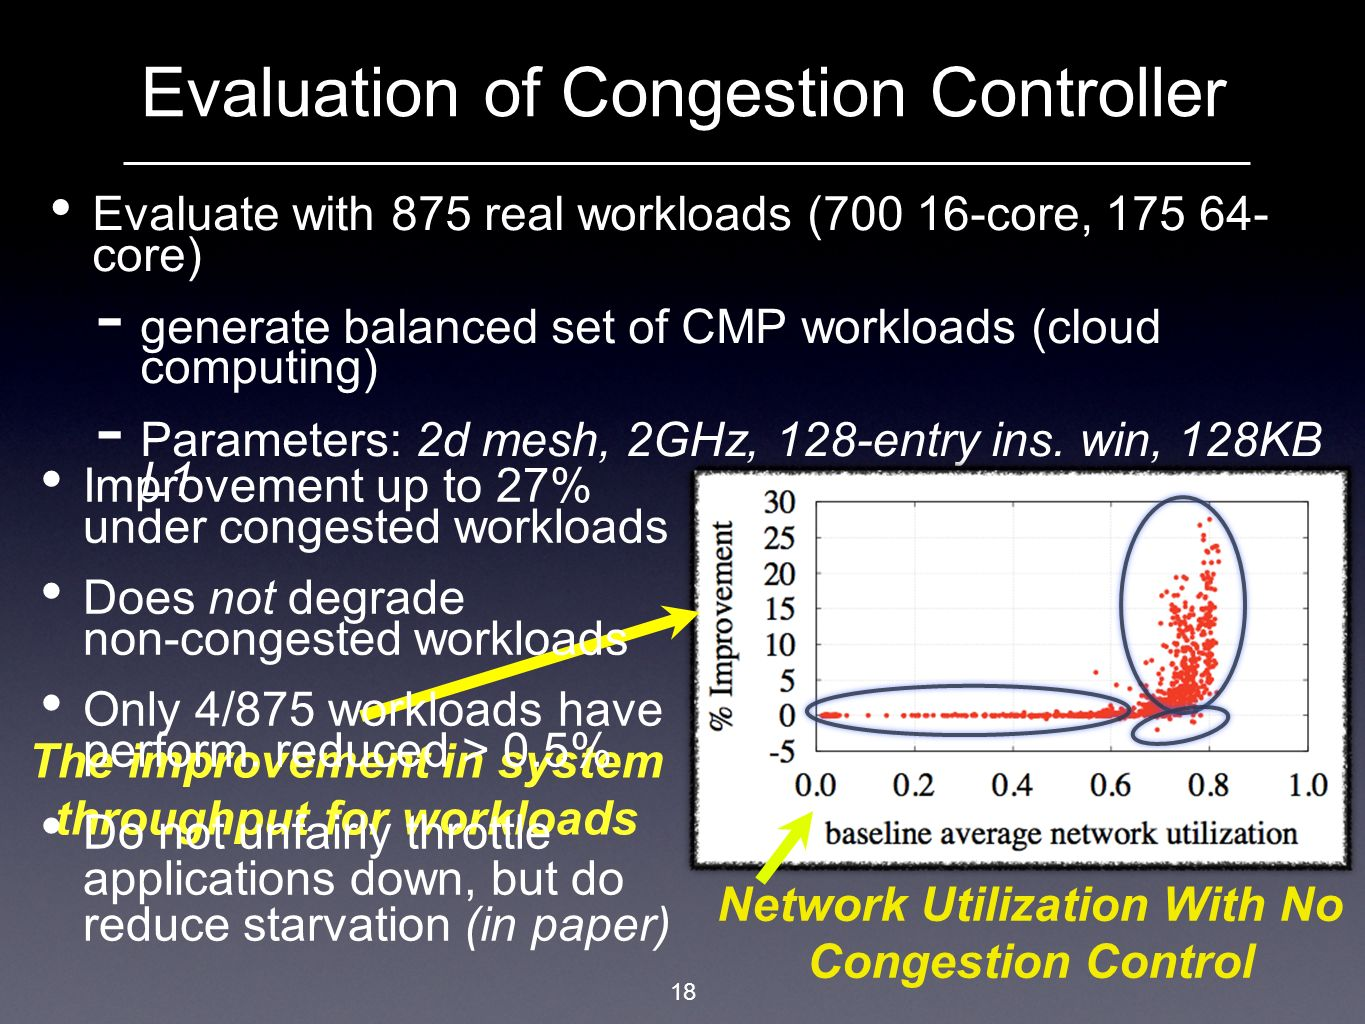 Evaluate with 875 real workloads (700 16-core, 175 64- core) generate balanced set of CMP workloads (cloud computing) Parameters: 2d mesh, 2GHz, 128-e